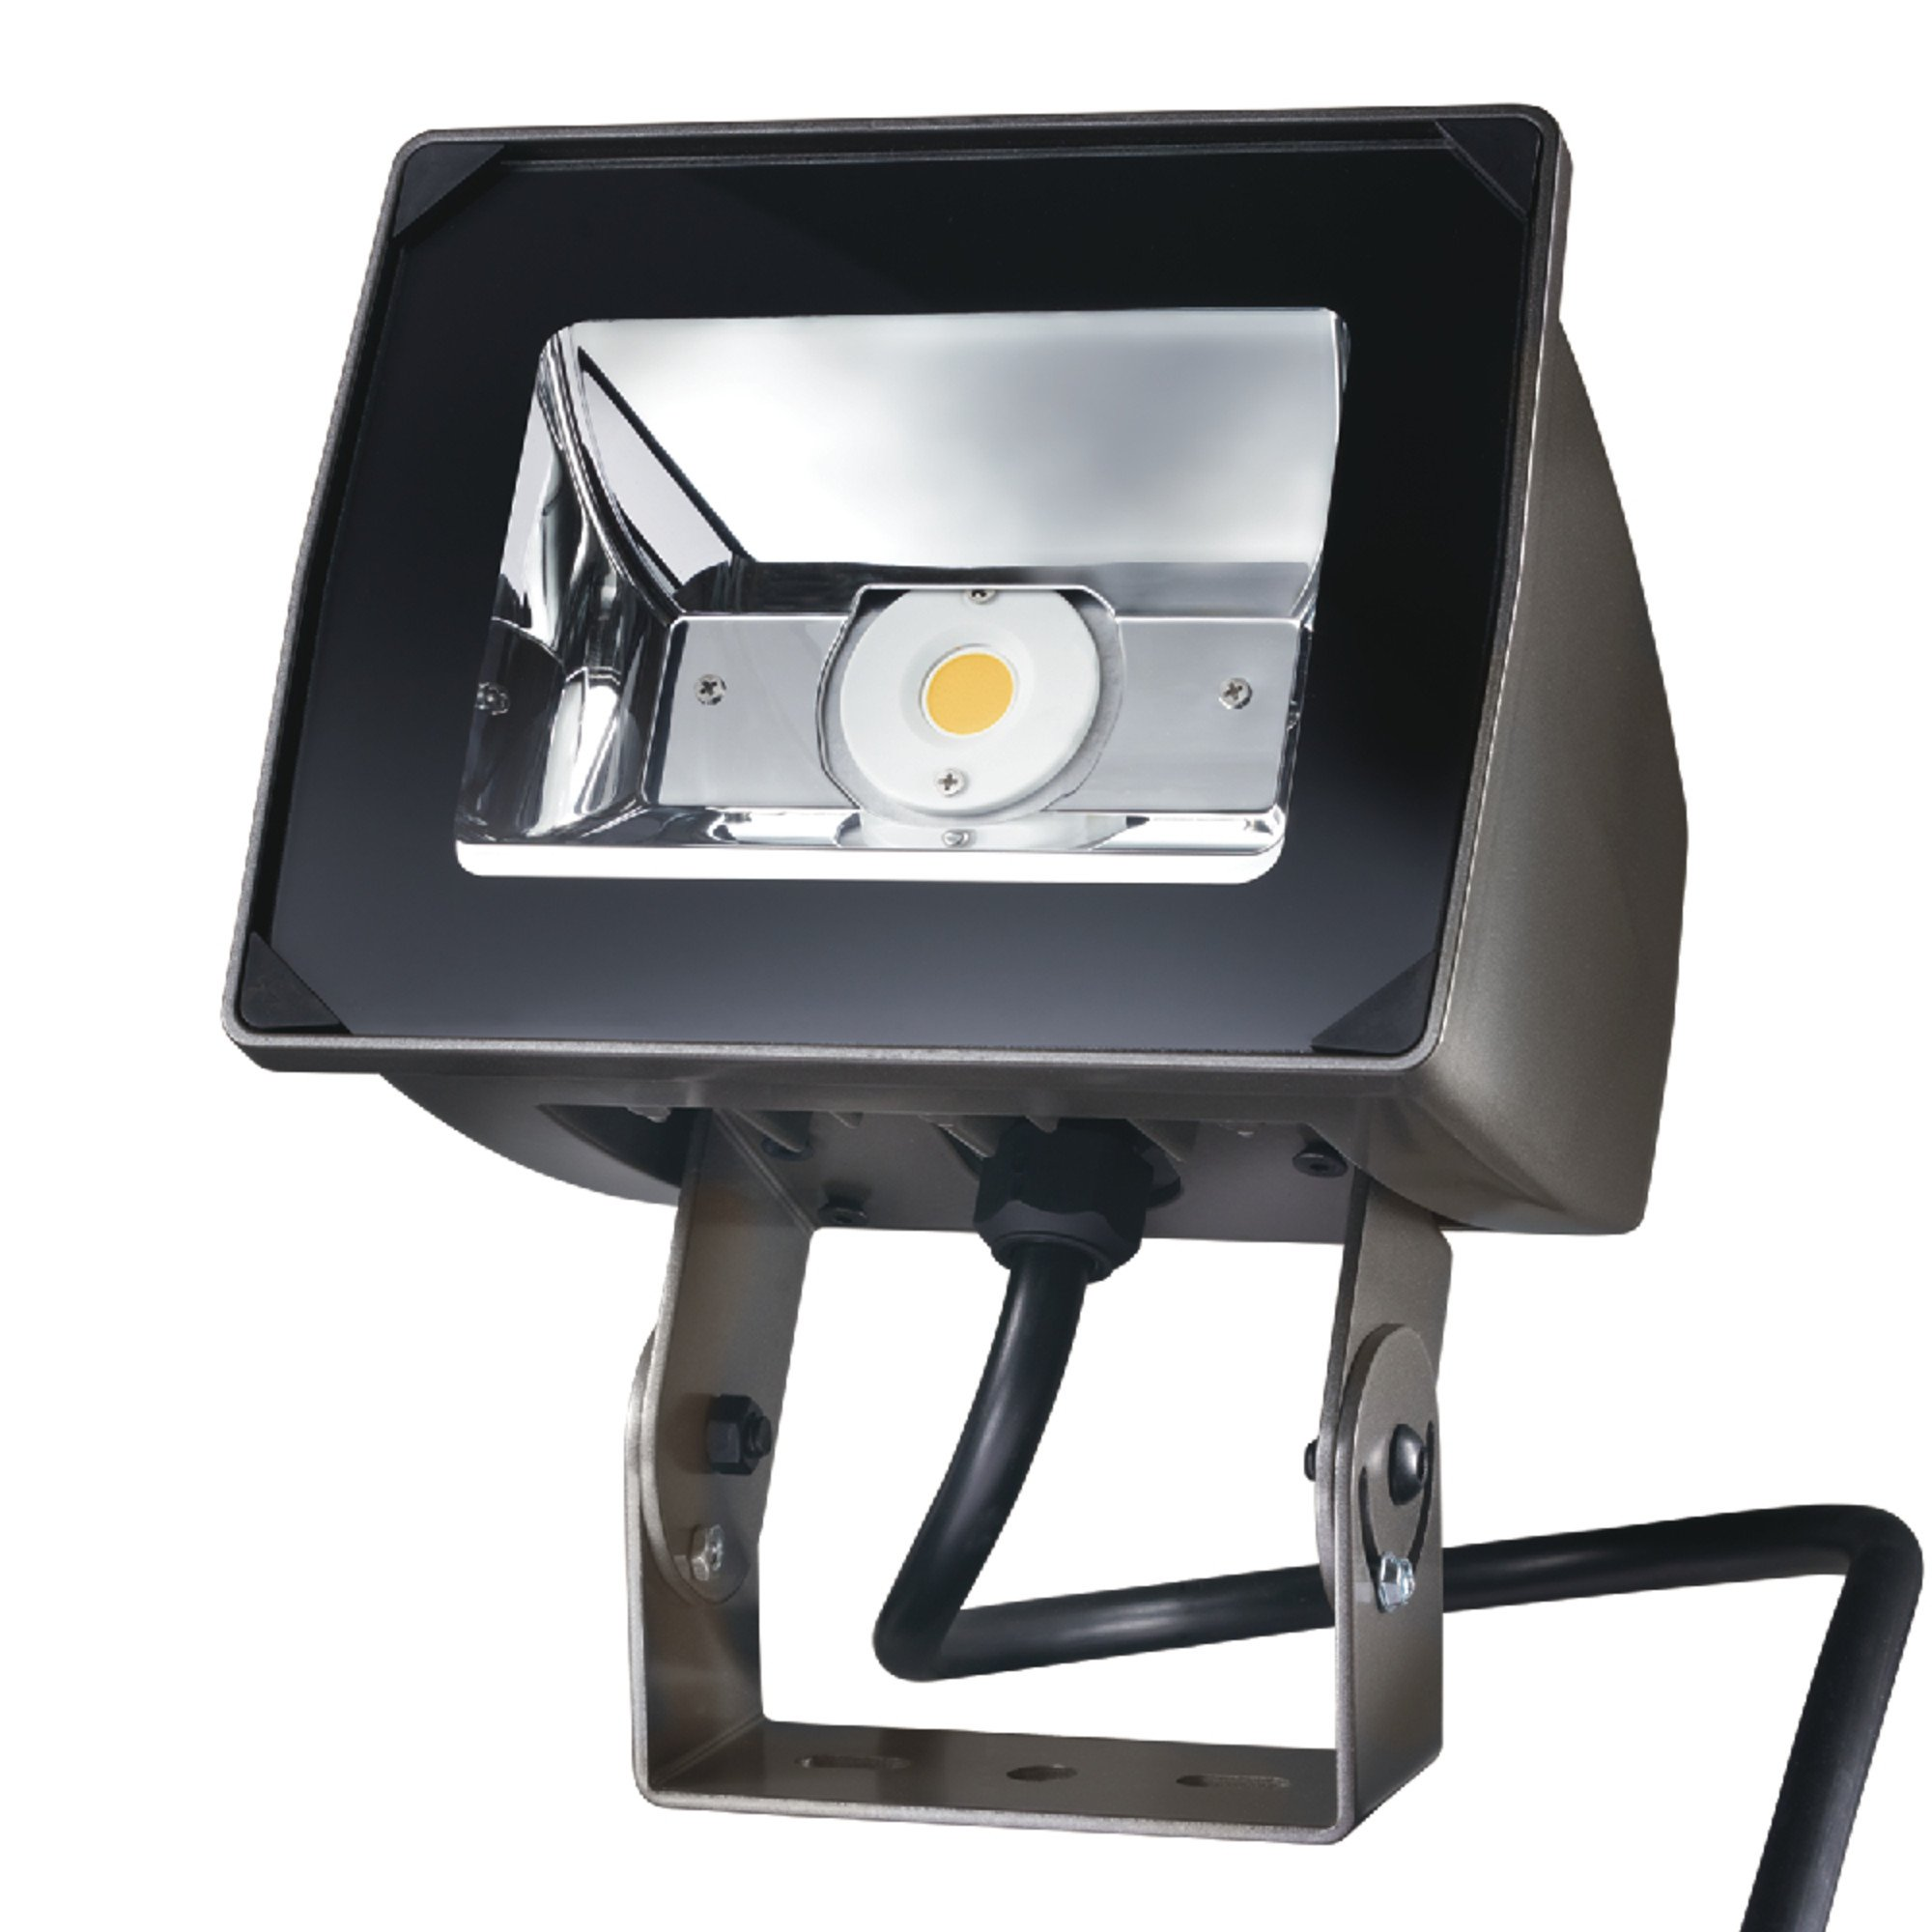 Lumark Nffld-S-C70-T-Unv Night Falcon 20W Carbon Outdoor Integrated LED Area Light with Trunnion Mounting, Bronze